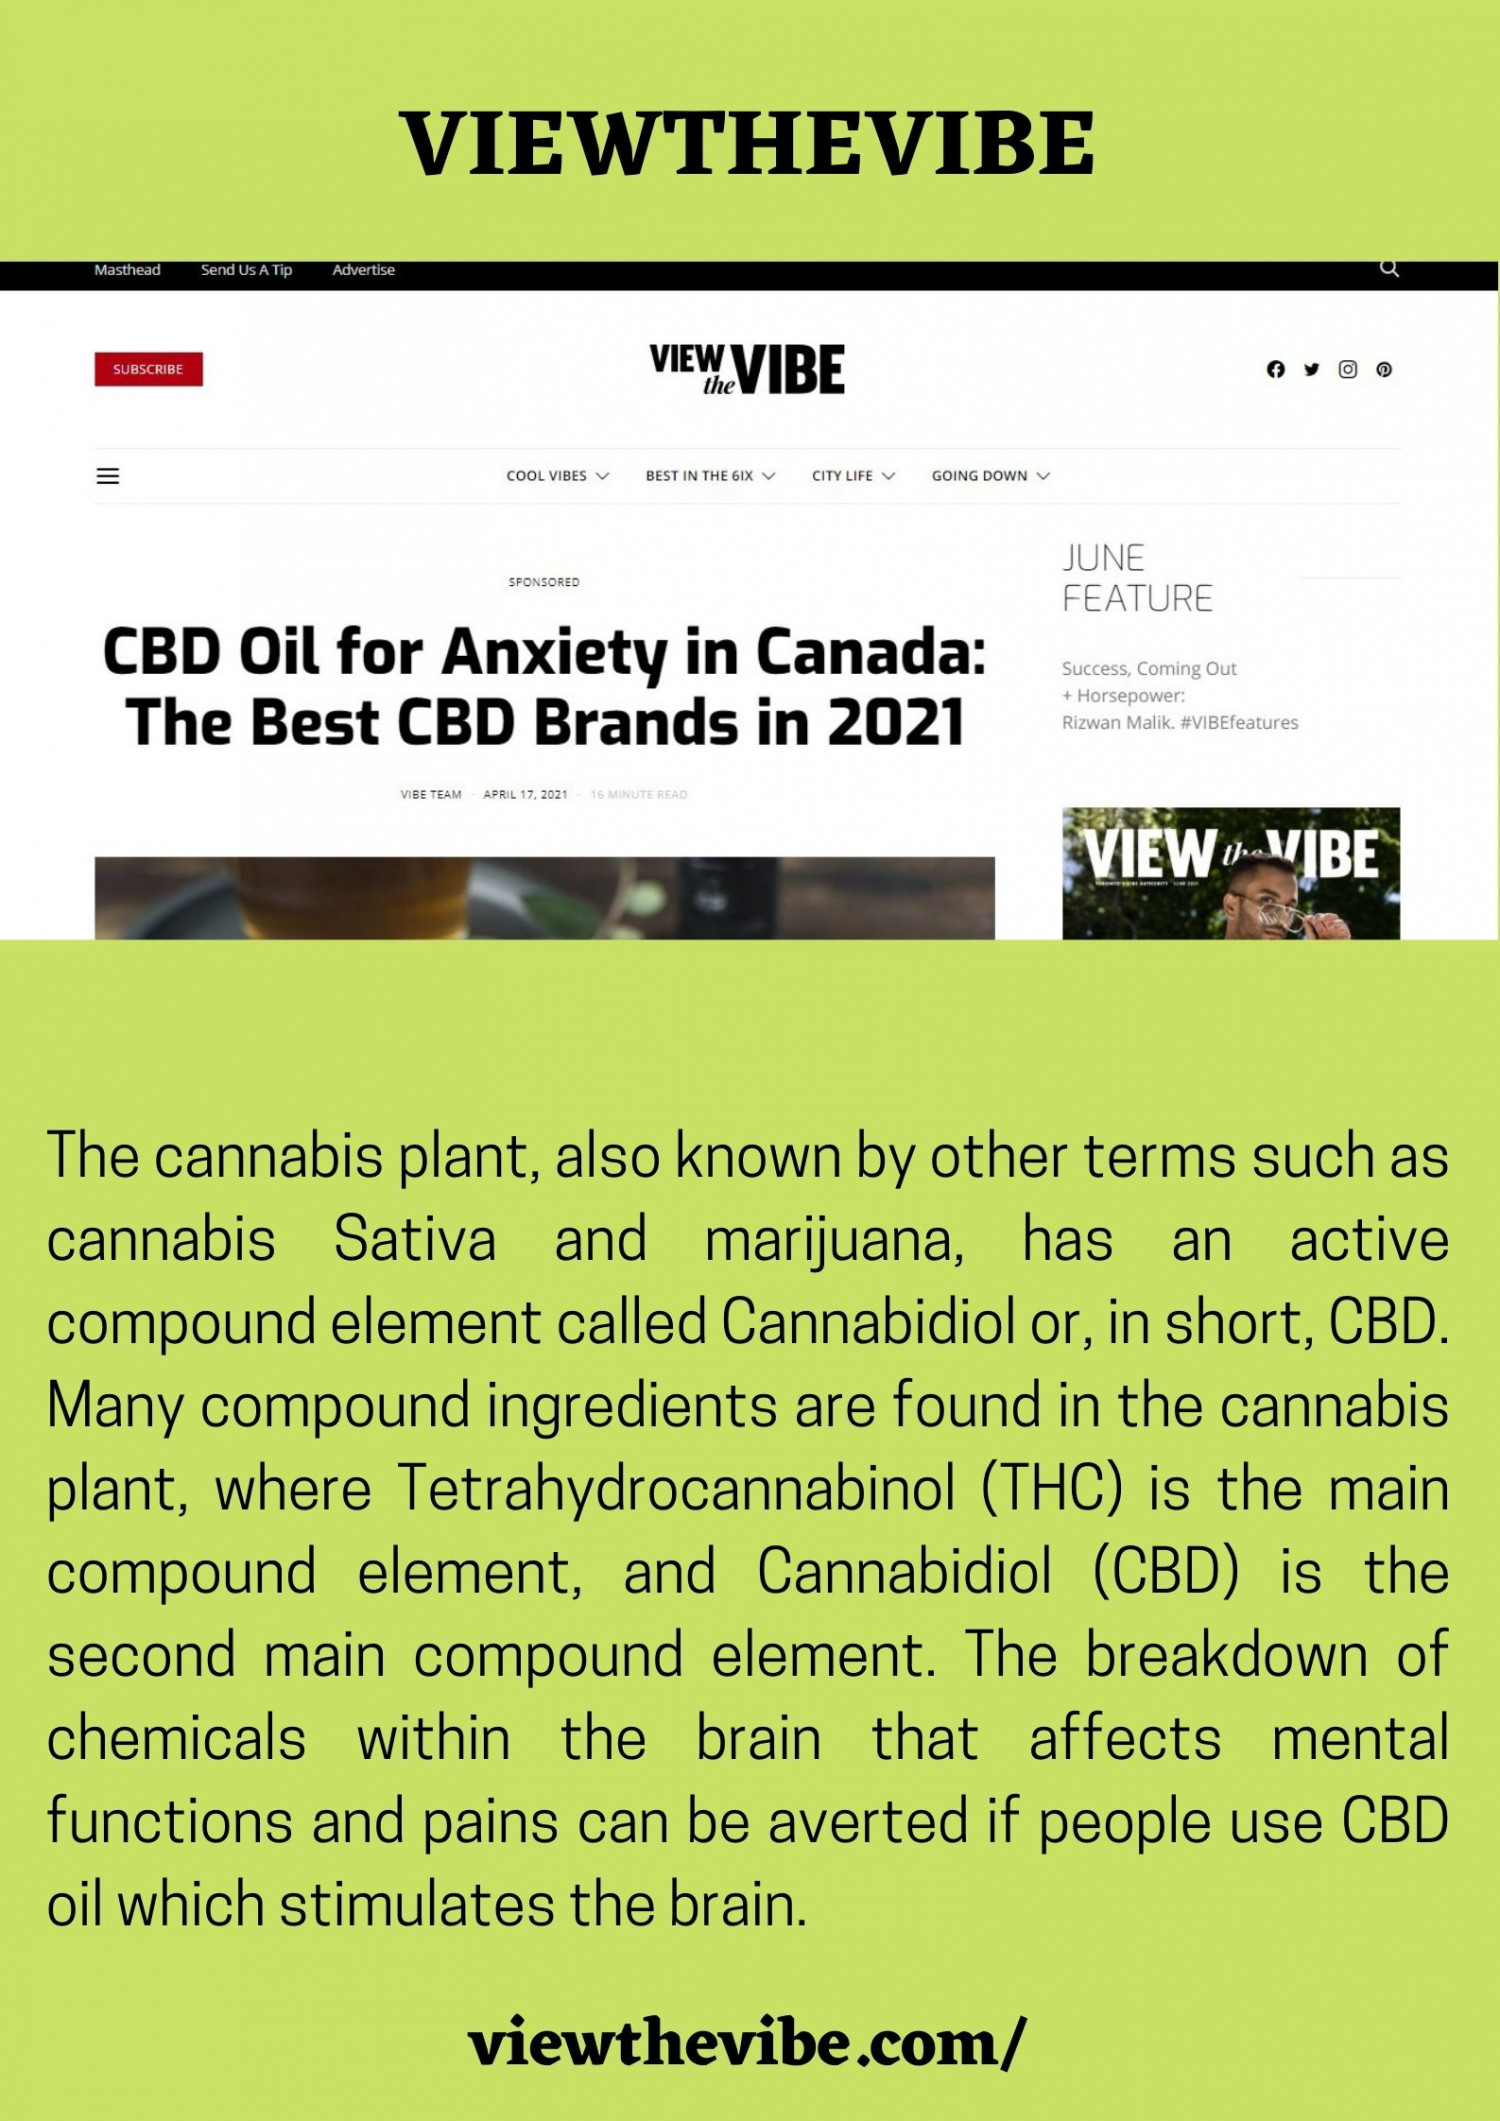 CBD oil for anxiety Canada Infographic